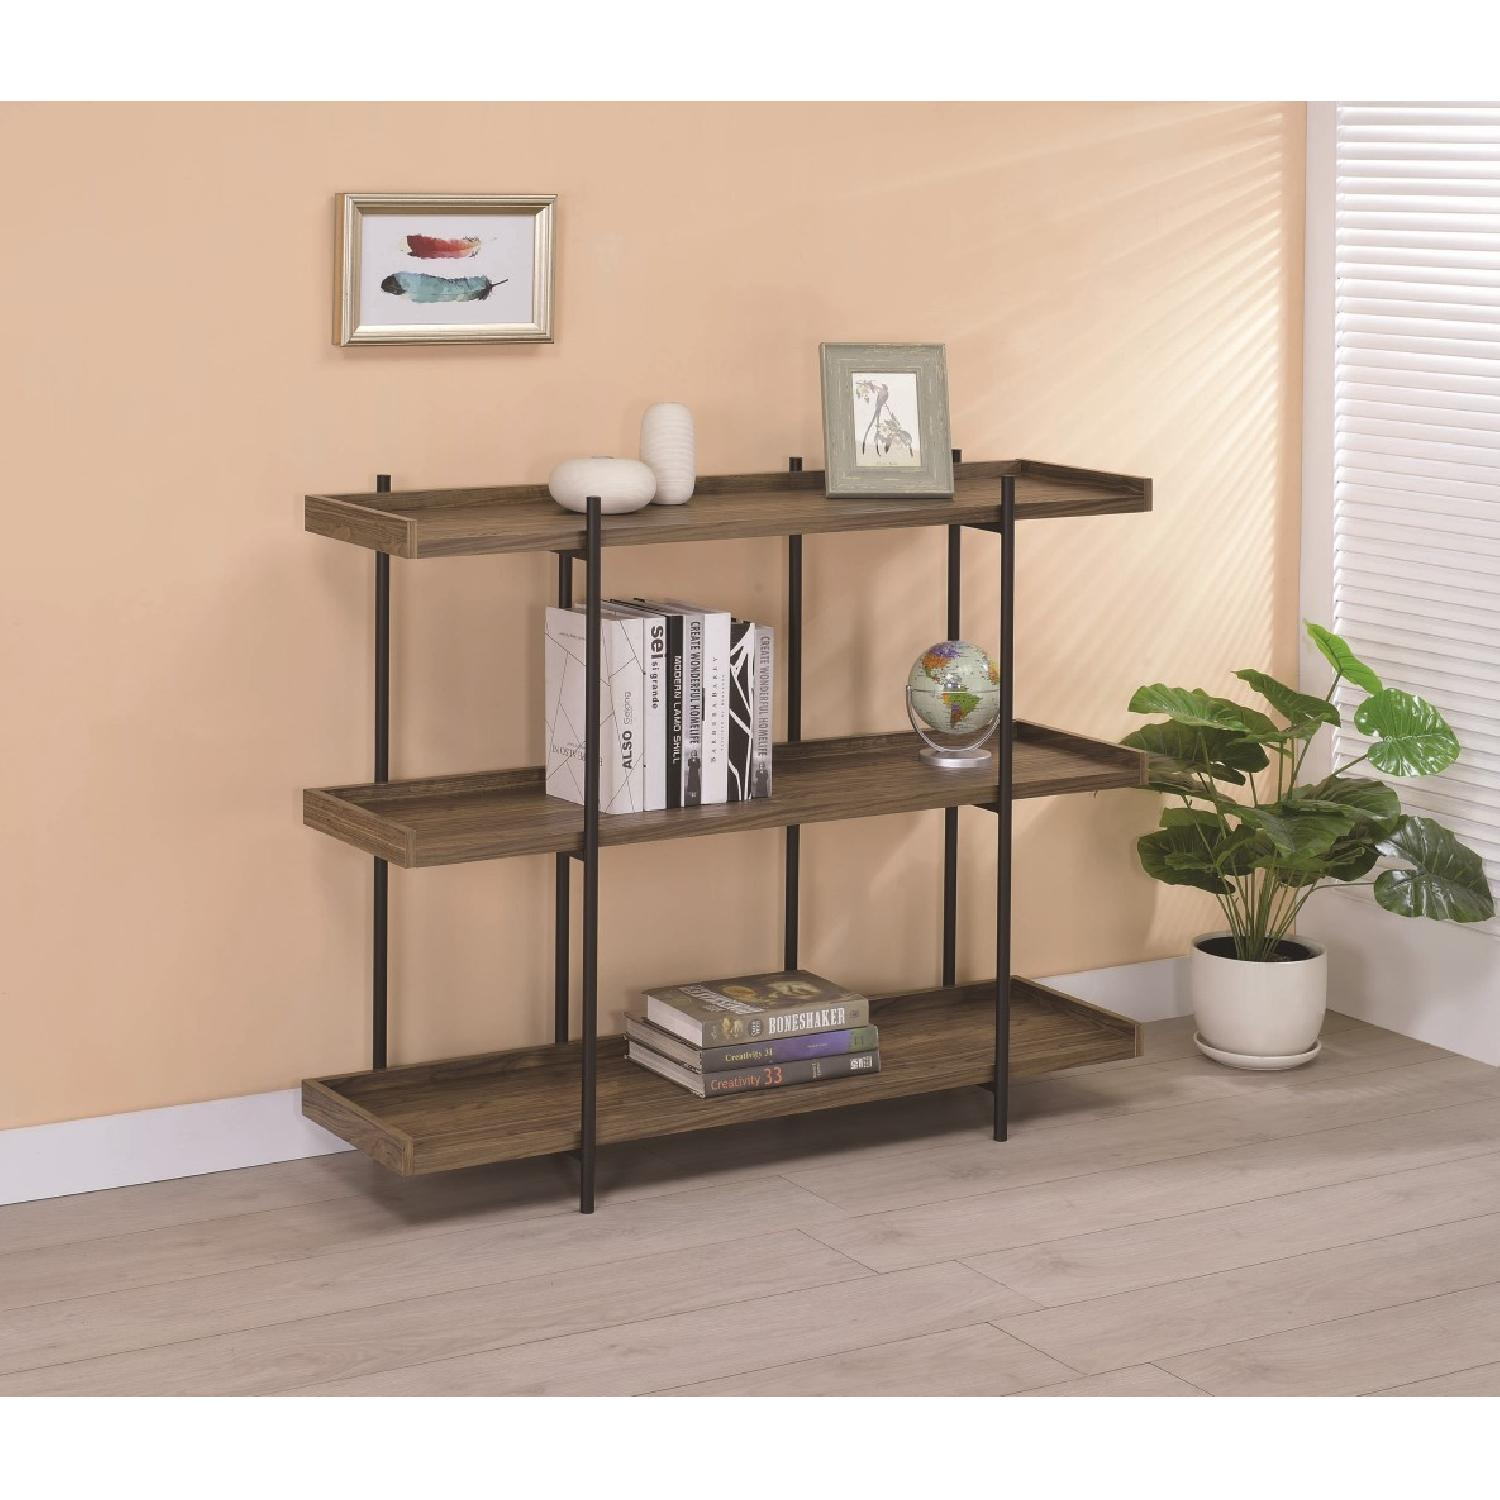 Industrial Style 5-Shelves Bookcase in Aged Walnut Finish - image-9